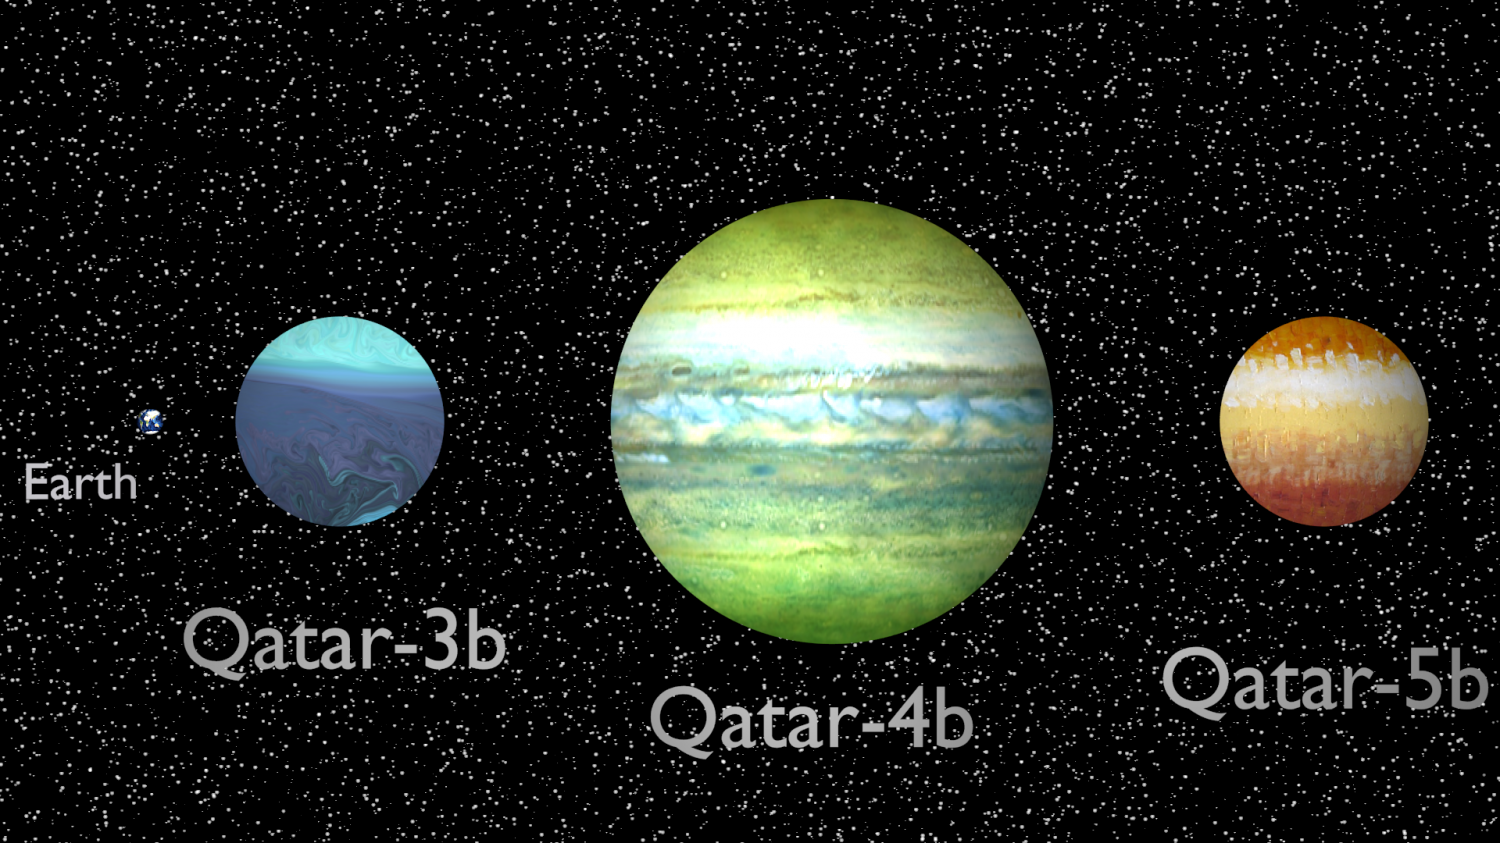 newest planets discovered today - photo #42